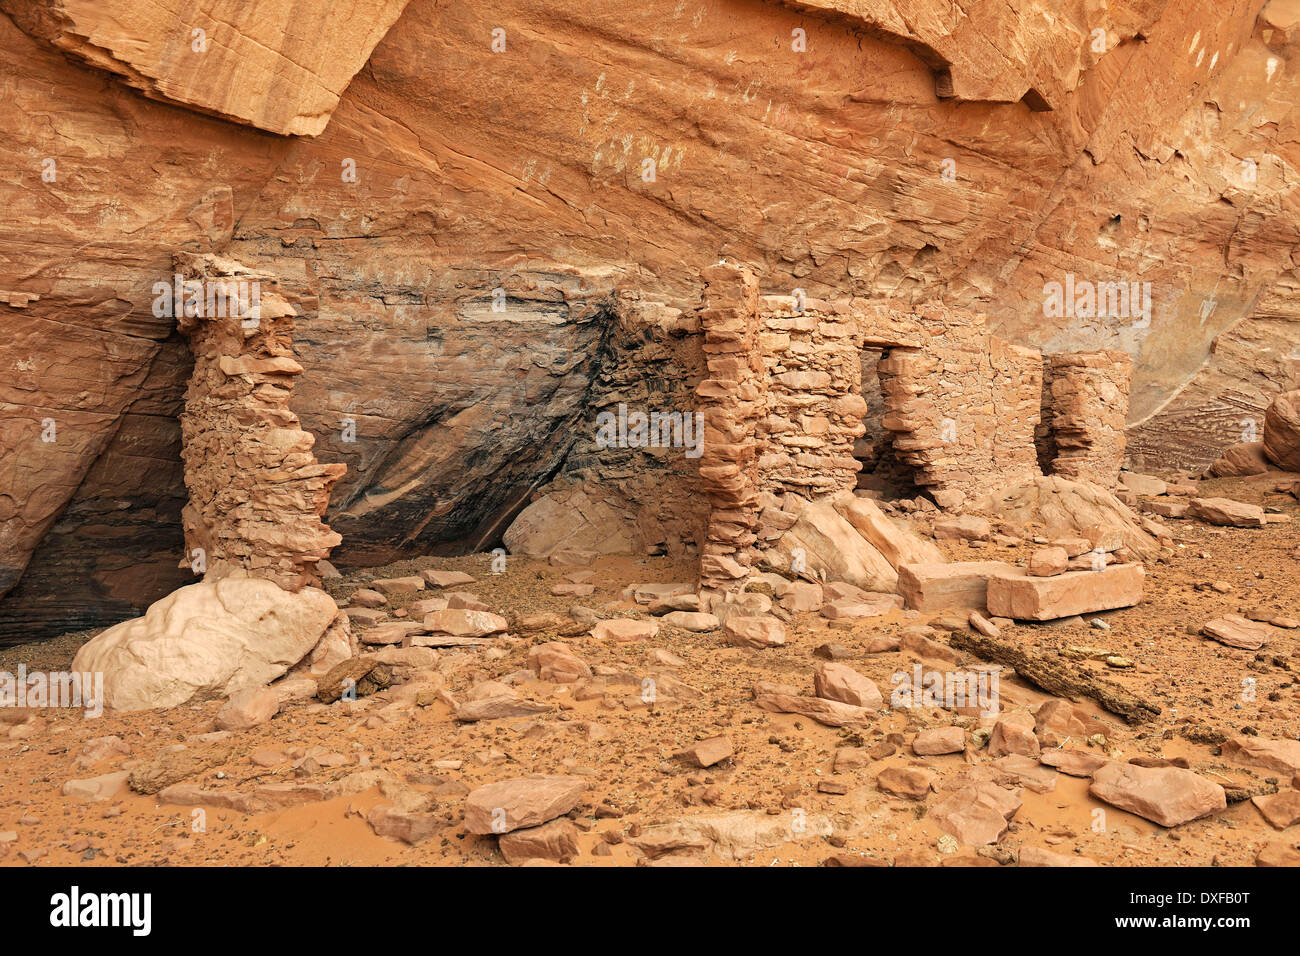 House of Many Hands, remains of Native Americans, about 1500 years old, Mystery Valley, Arizona, USA - Stock Image